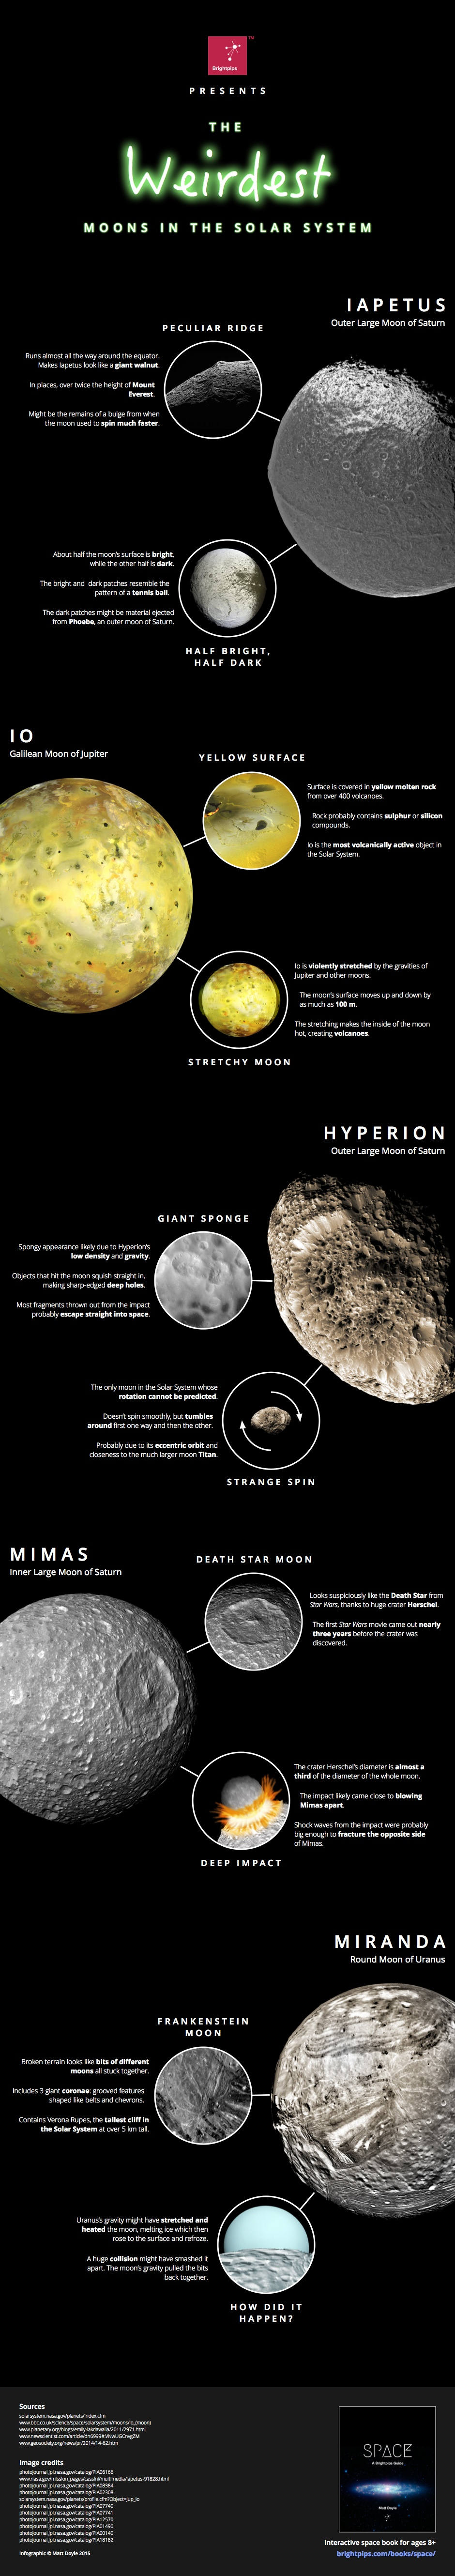 Mimas Moon Fun Facts The Weirdest Moons In The Solar System Infographic